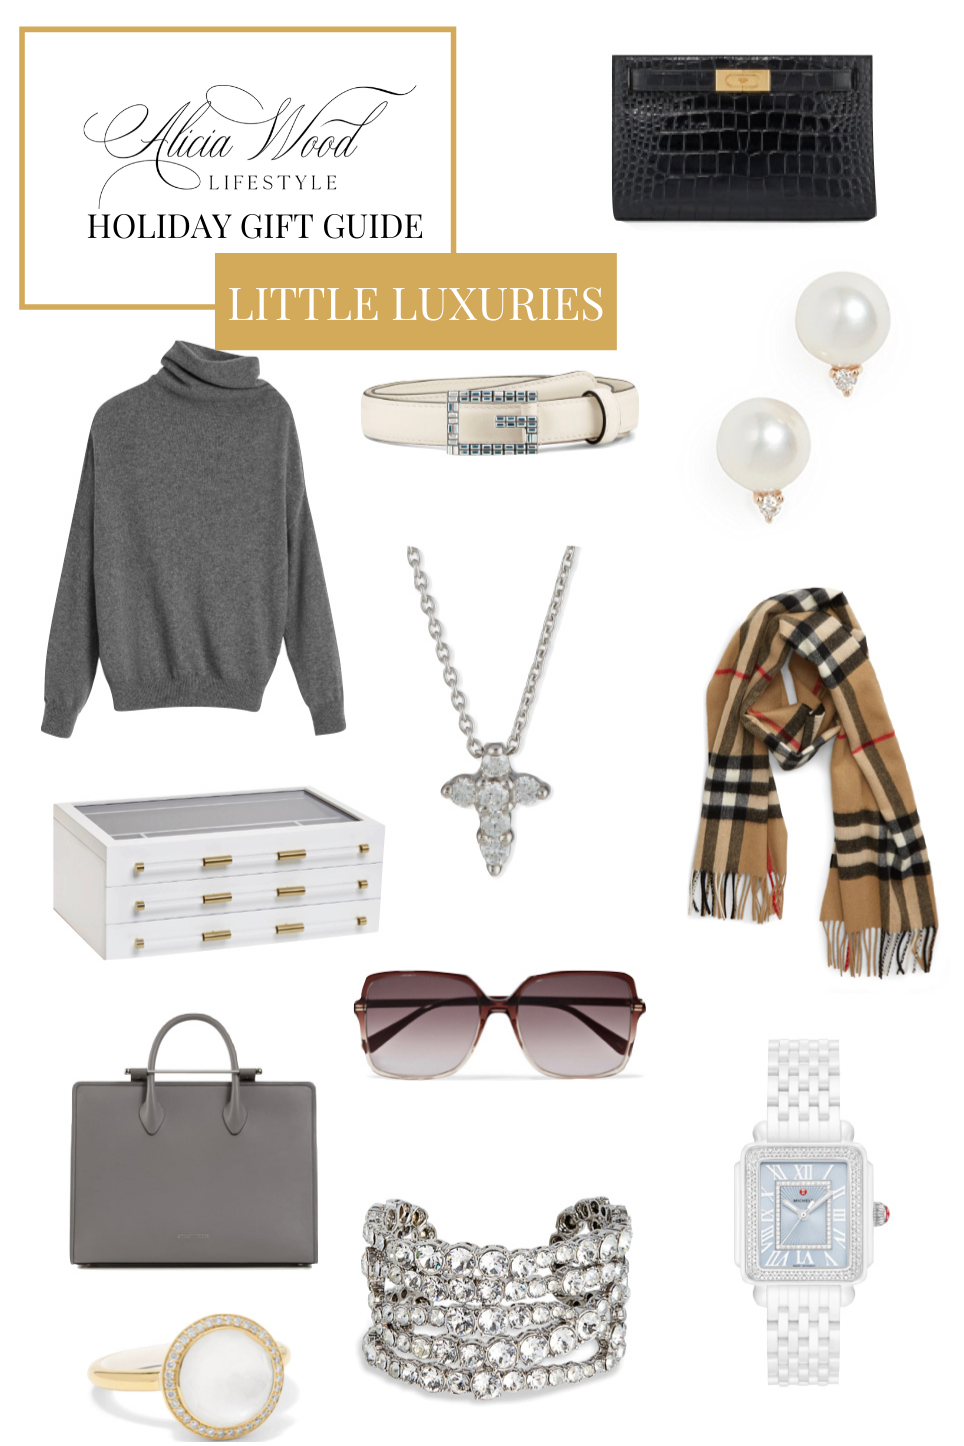 Gift Guide: Little Luxury Gifts